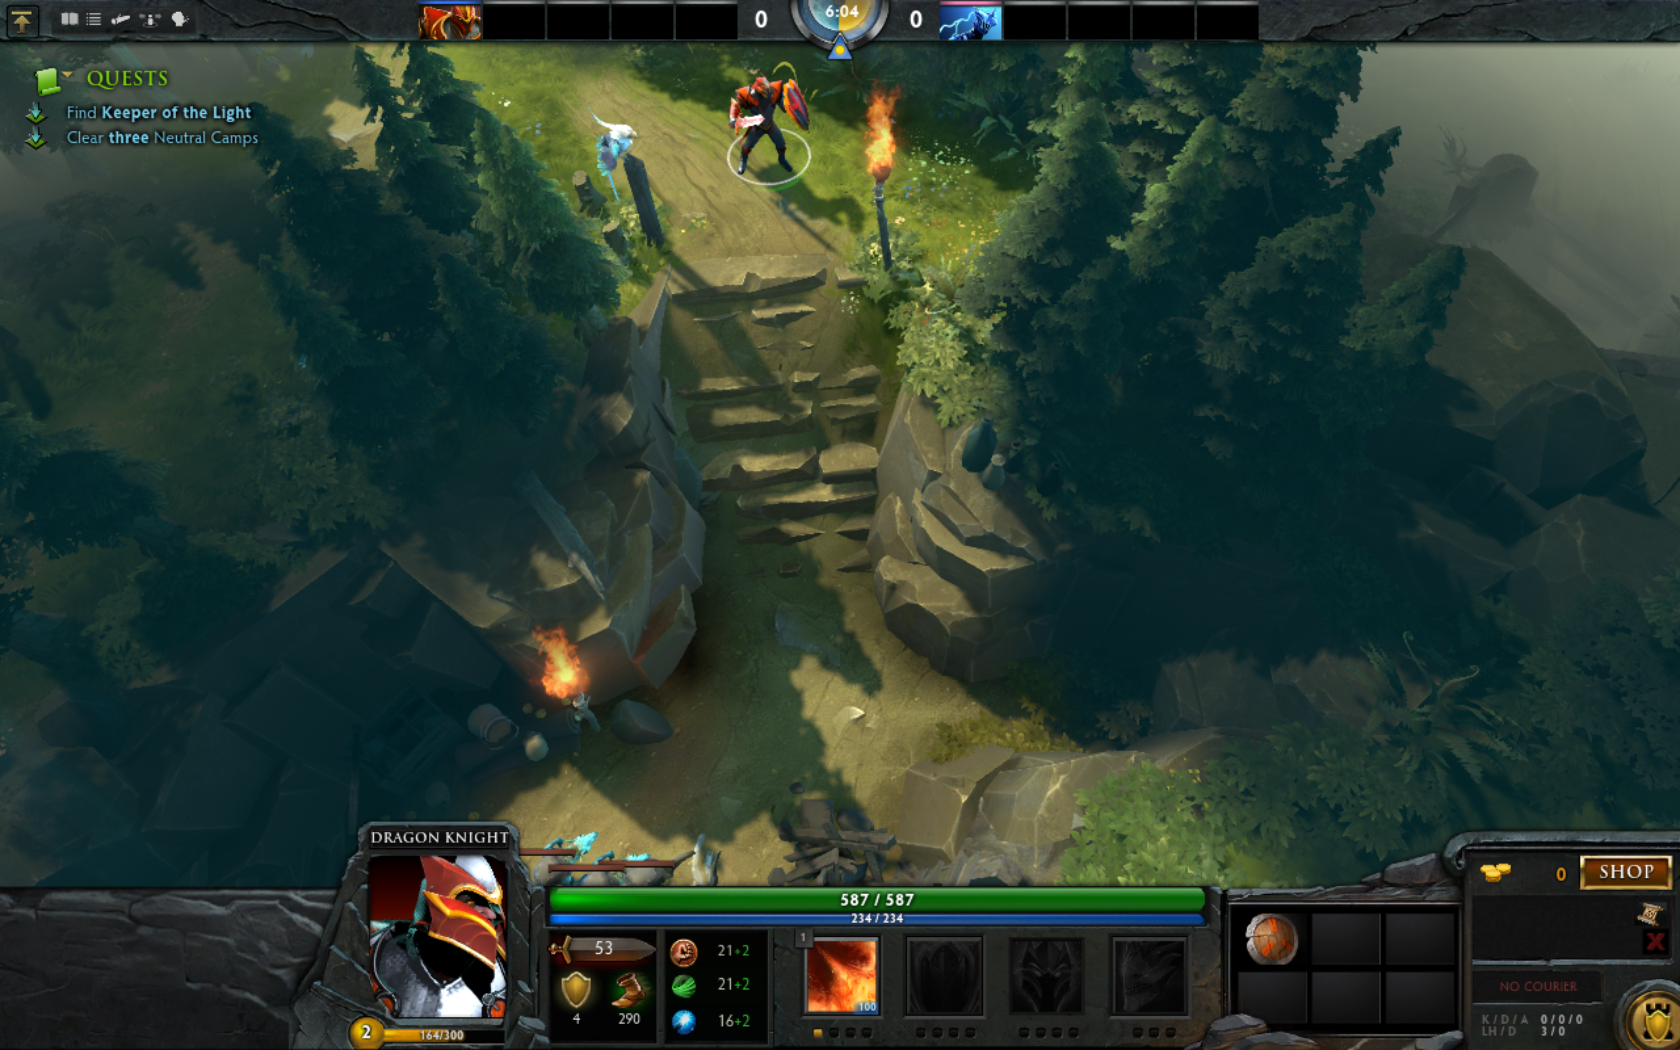 dota 2 on steam free to play gamersonlinux